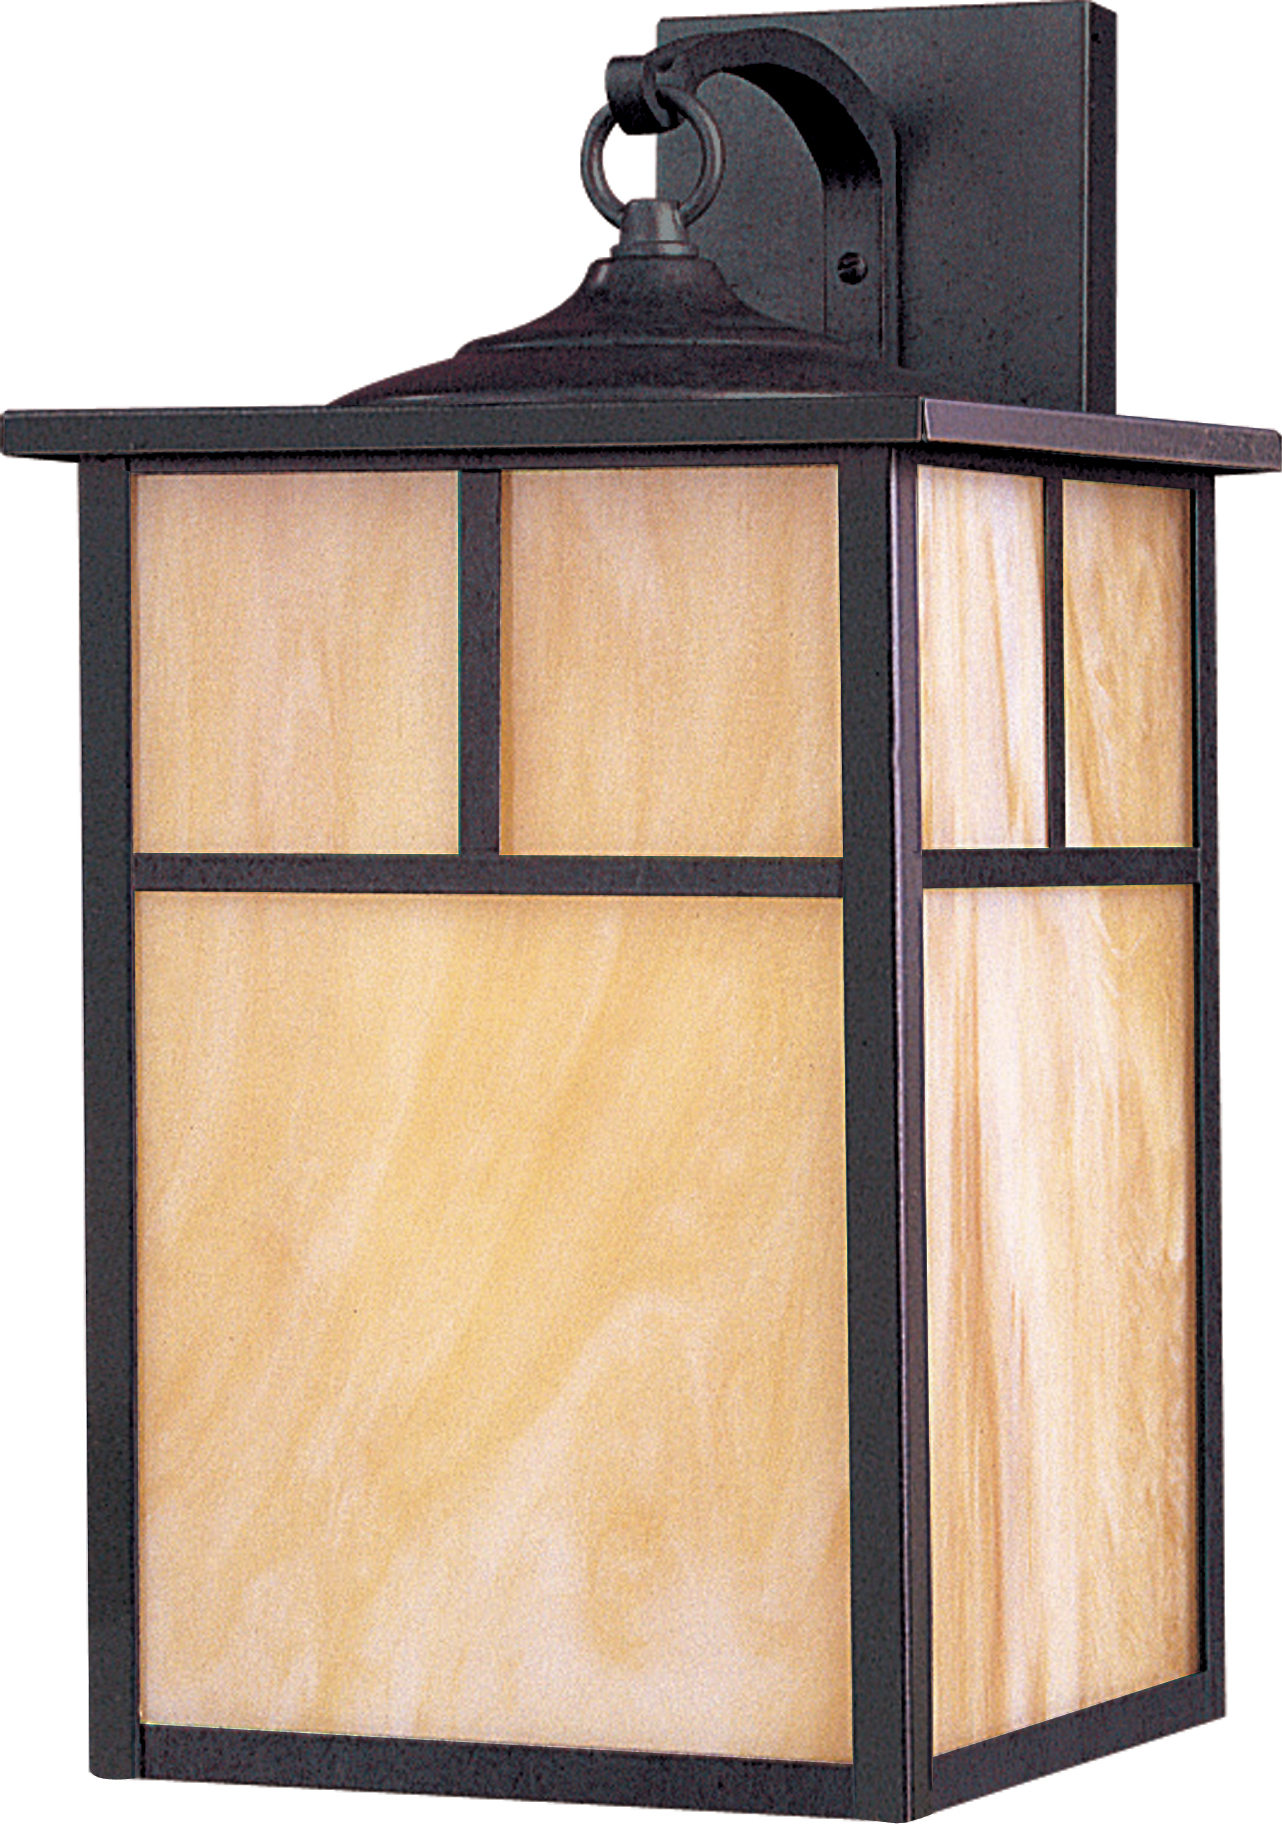 Coldwater LED 1-Light Outdoor Wall Lantern | Outdoor | Maximlighting